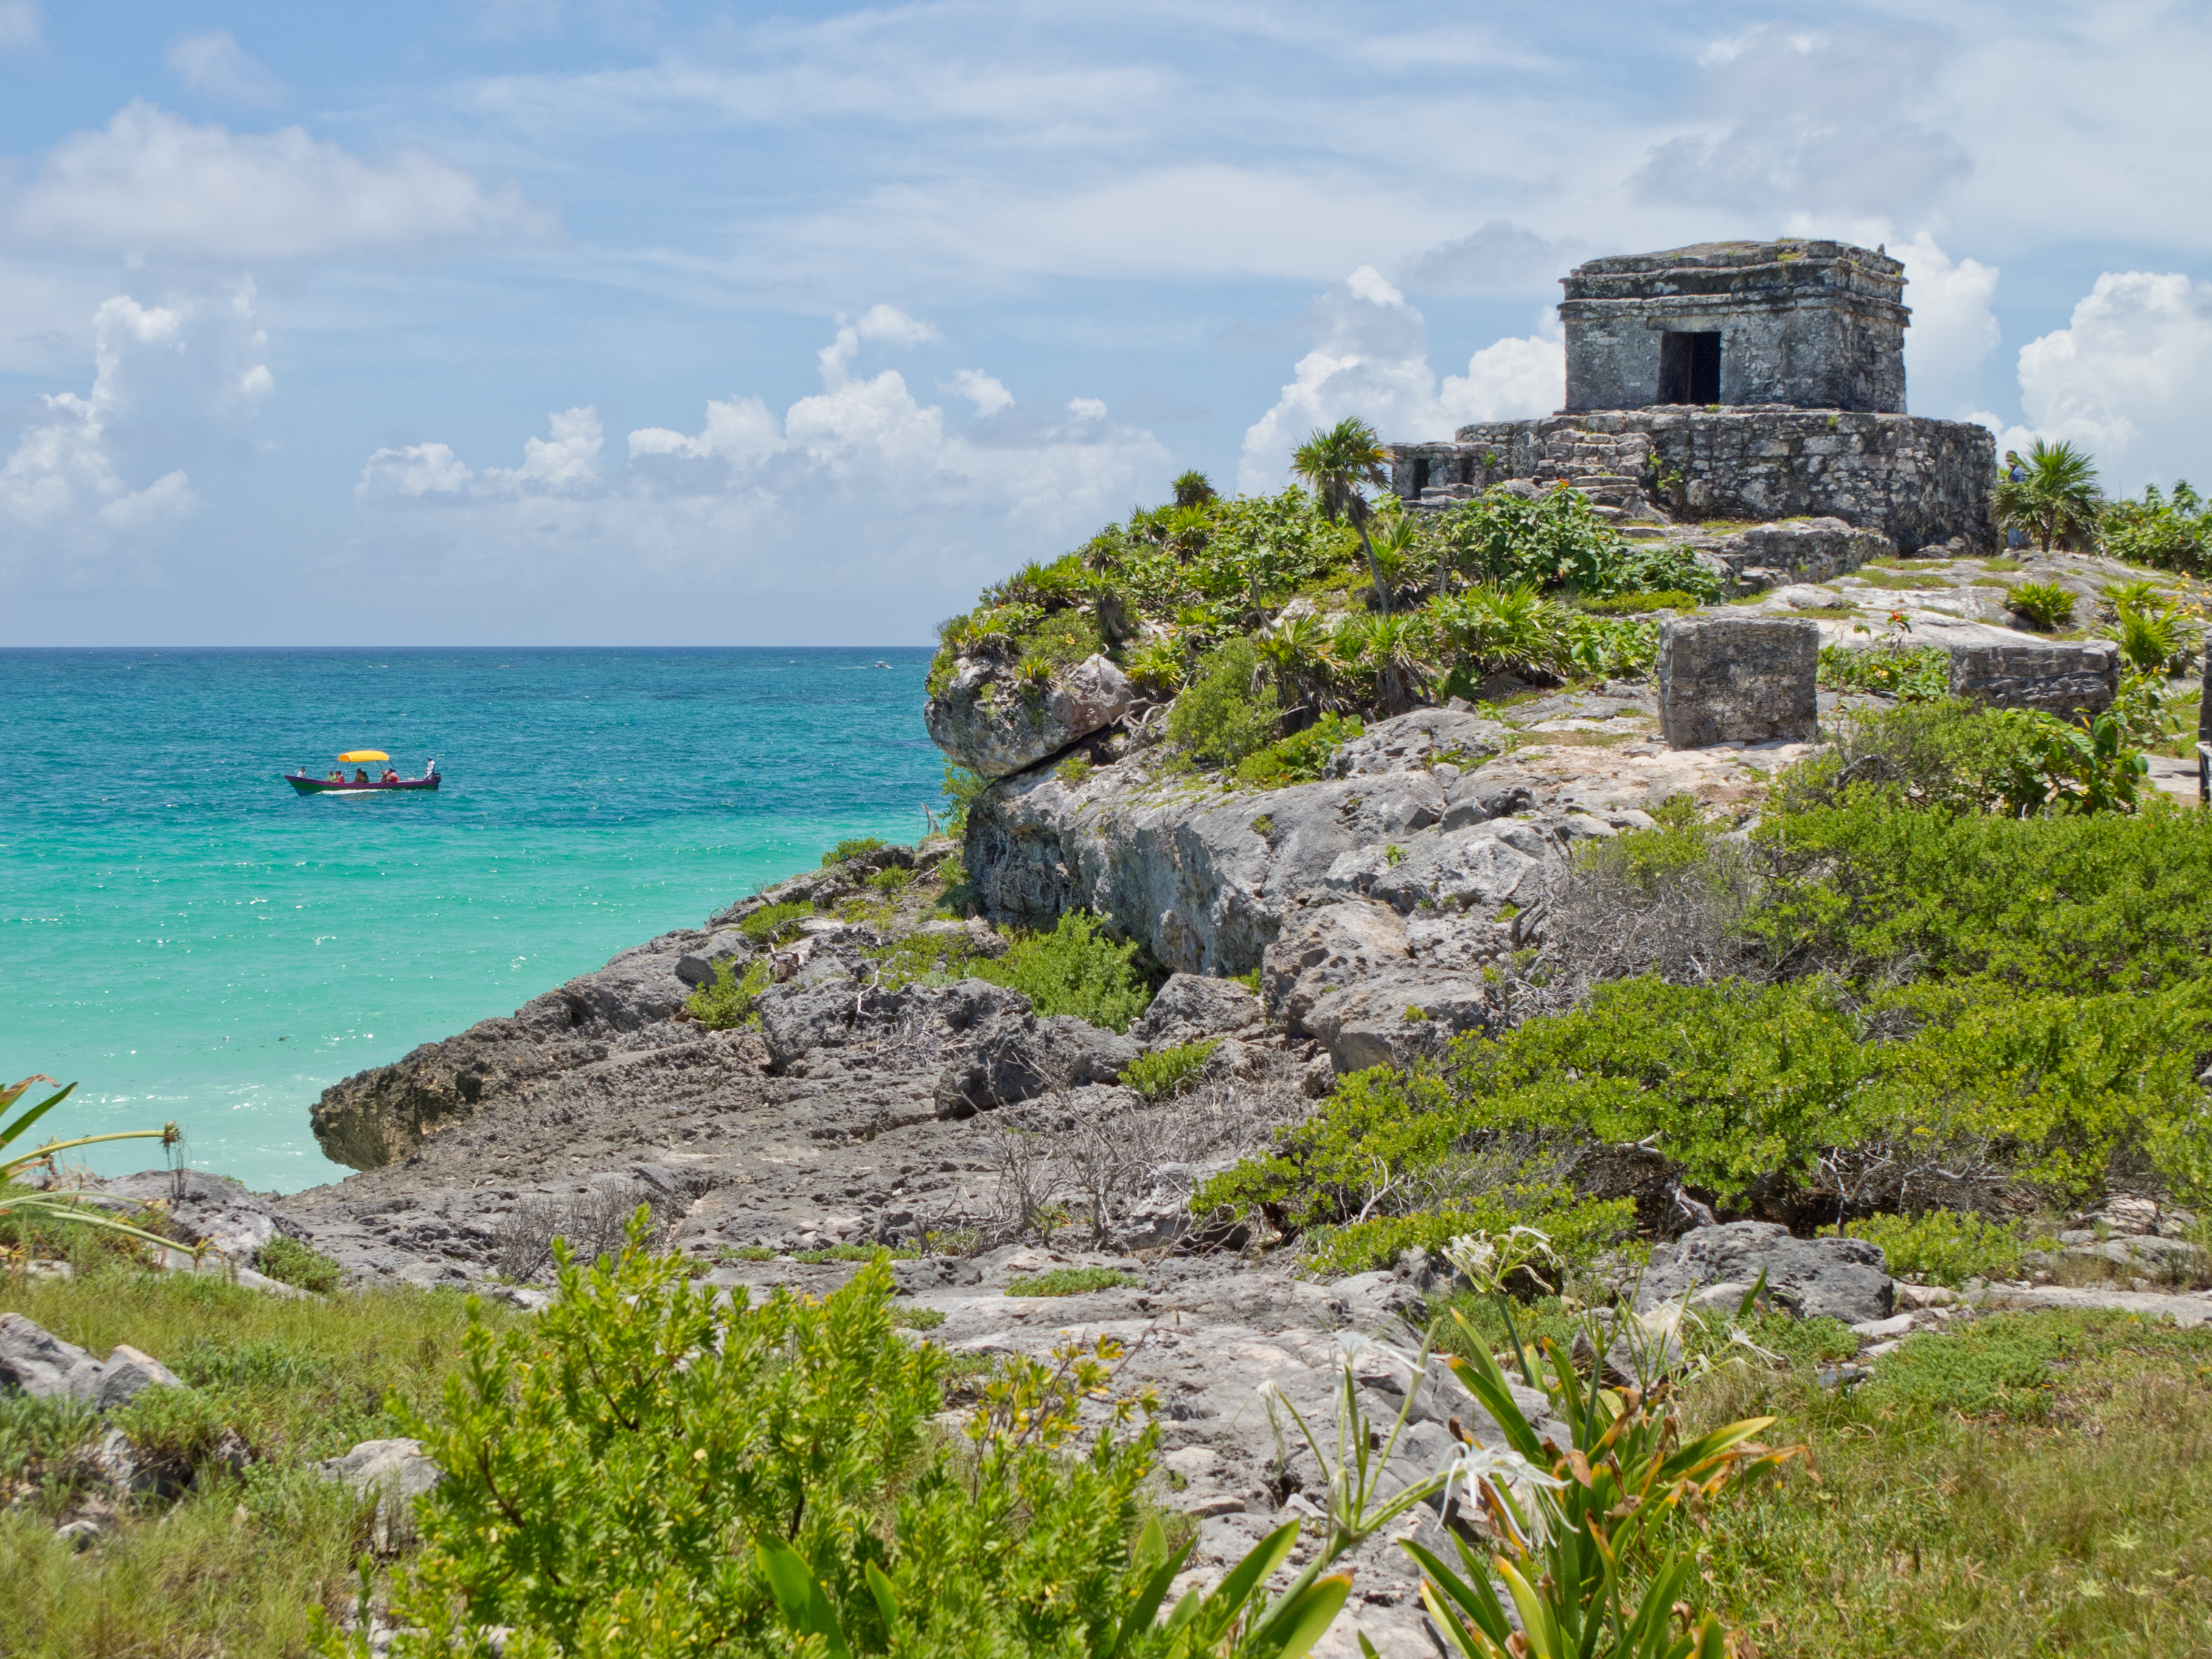 9- The islands of Quintana Roo